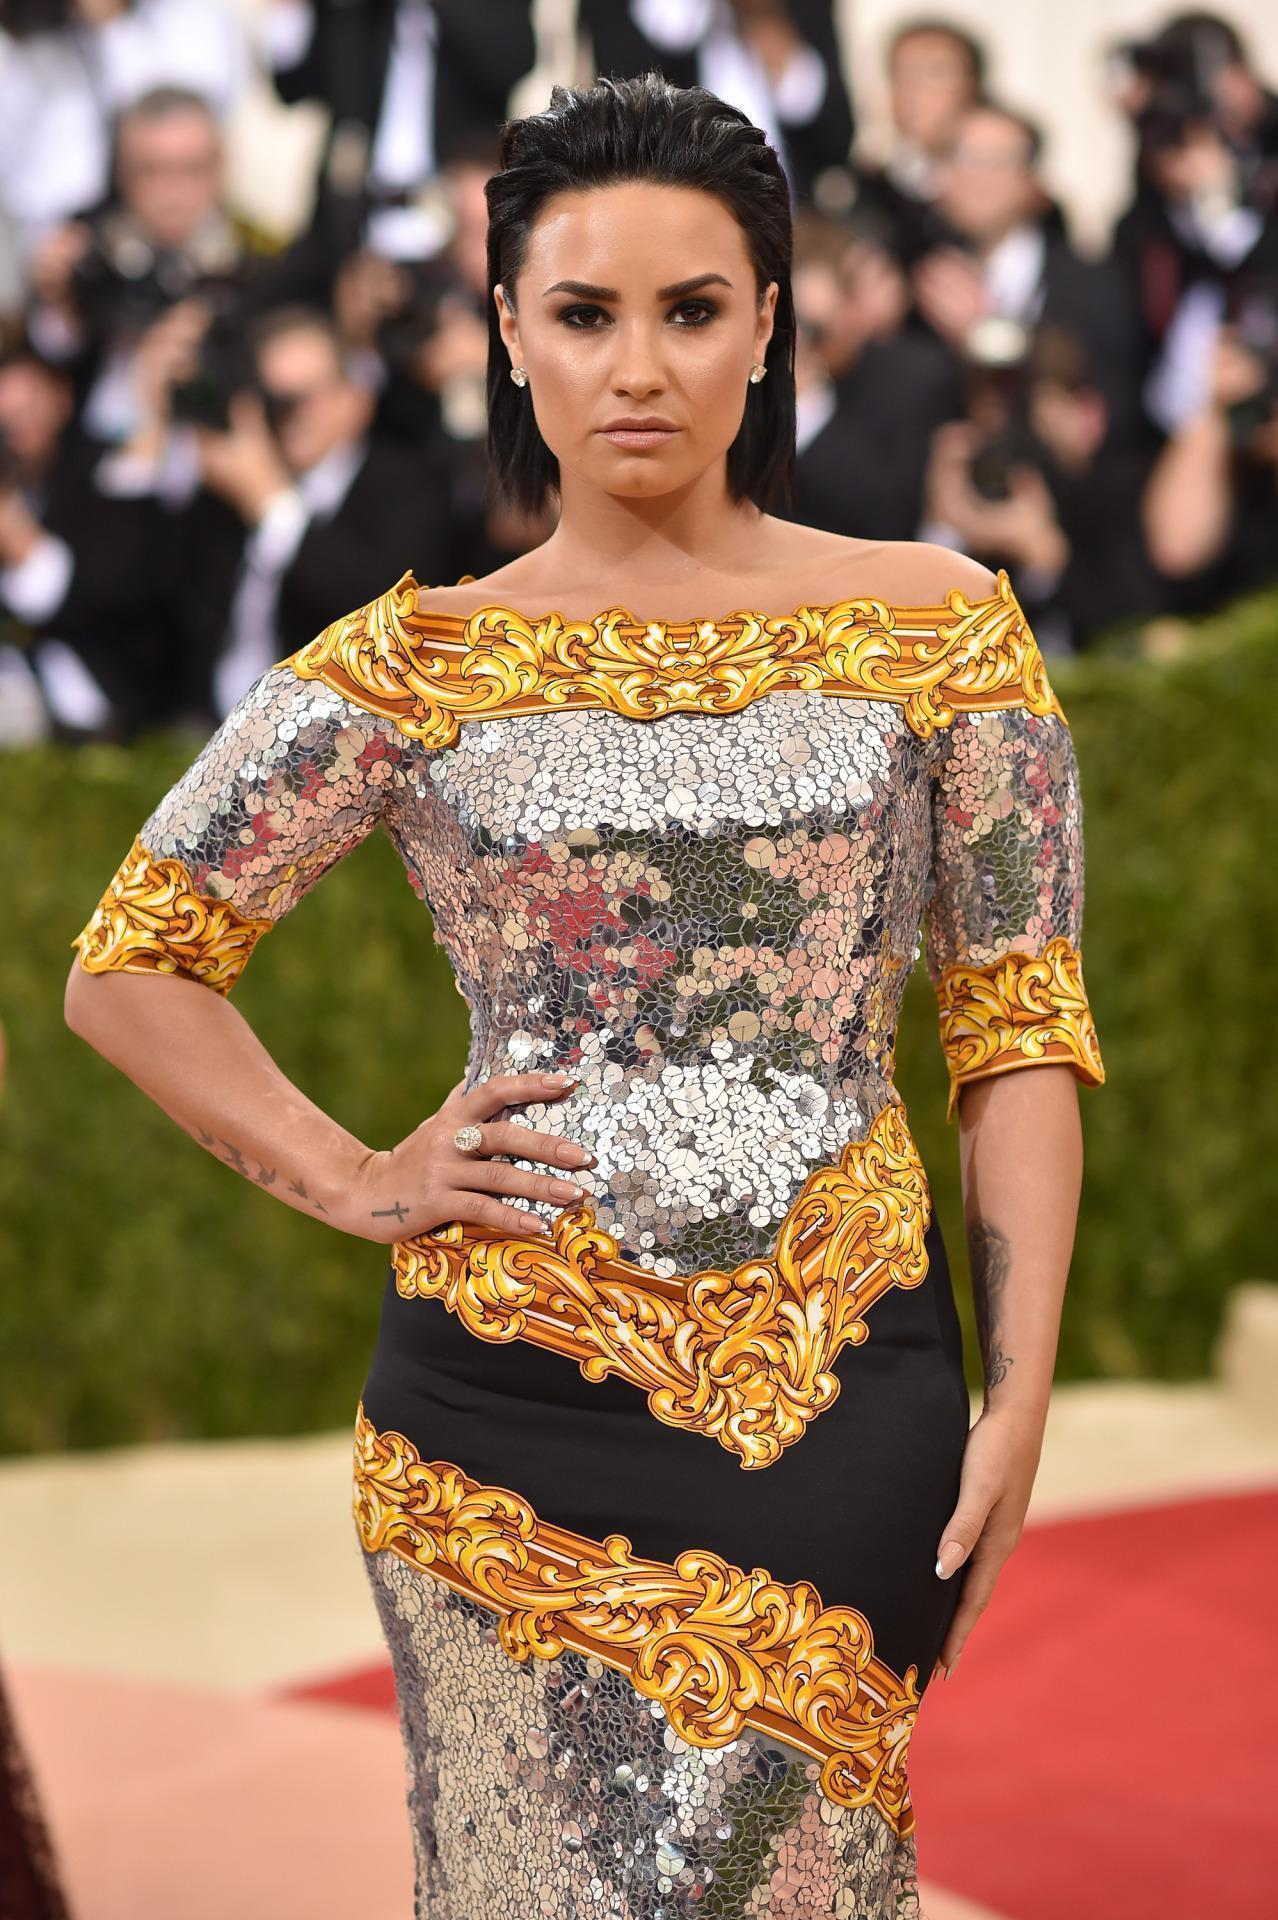 Demi Lovato Did Not Have Fun at Her First Met Gala 😭